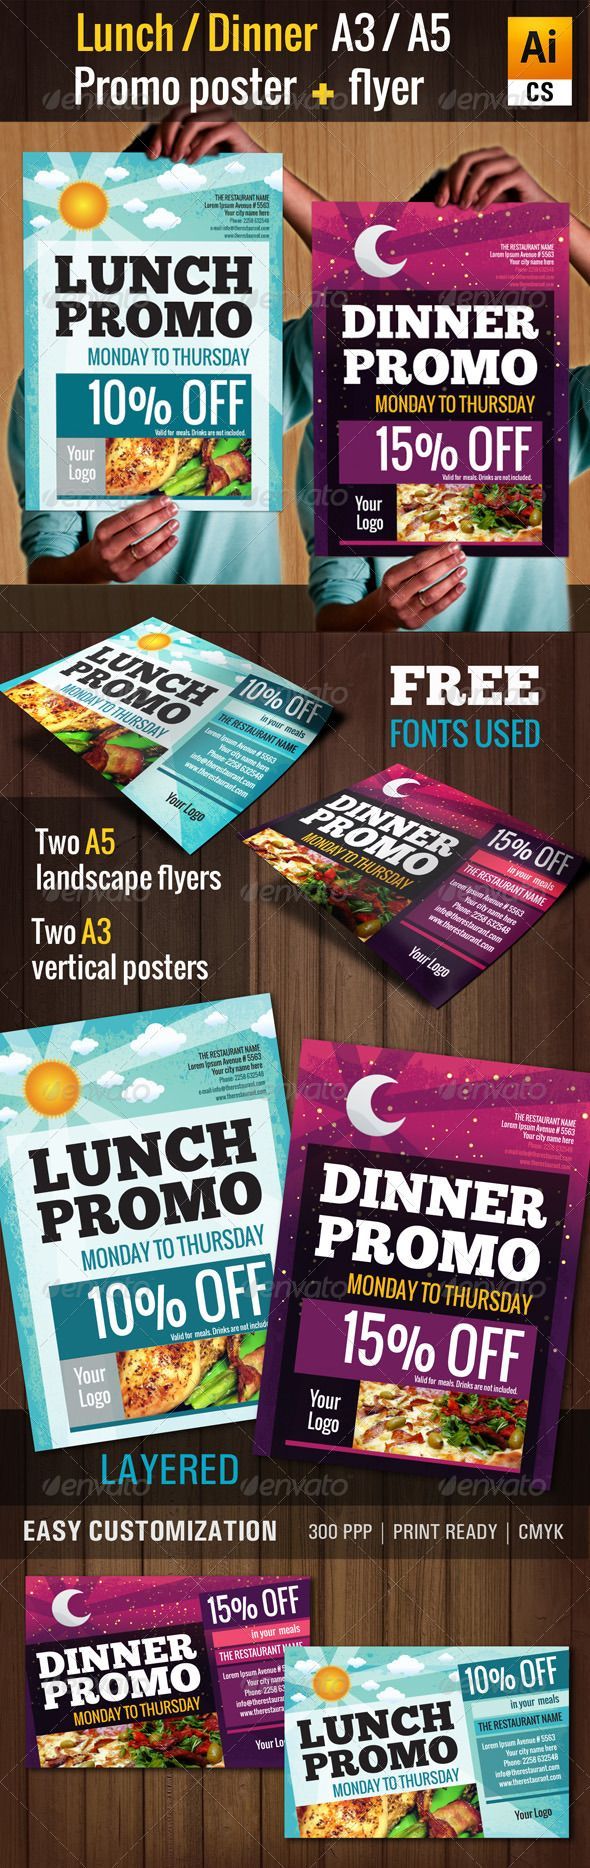 lunch  u0026 dinner promo poster  flyer  a3  a5